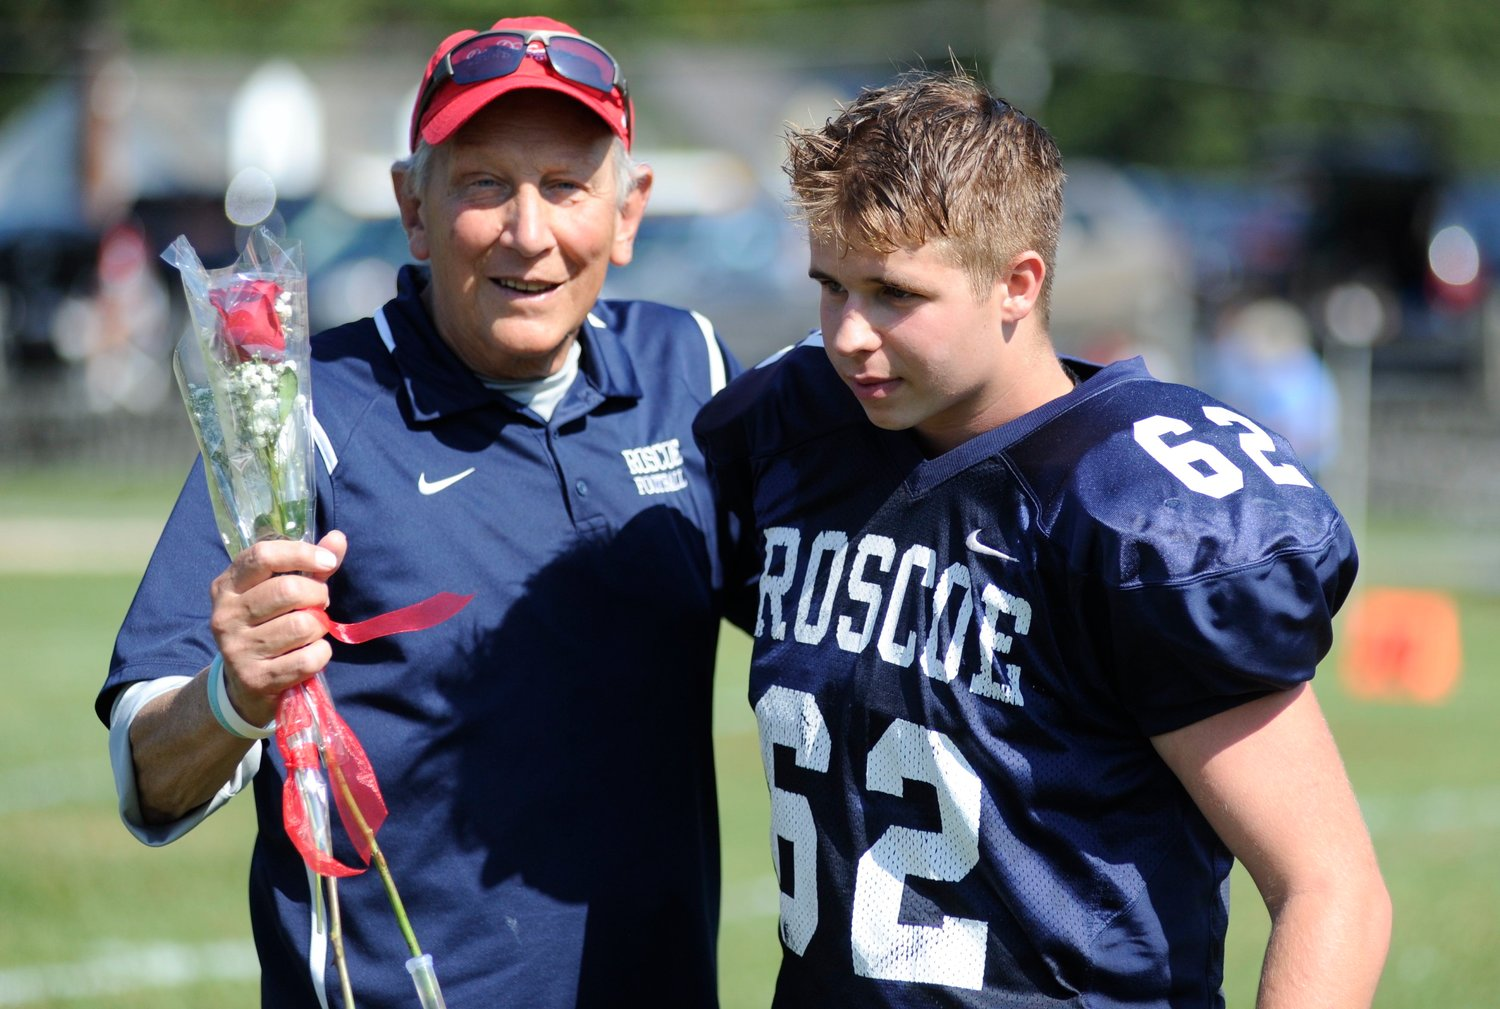 Coach Fred Ahart of Roscoe/Livingston Manor/Downsville, congratulates Jesse Ouimet, one of four seniors on the Blue Devils football team, which is comprised of players from three local schools.